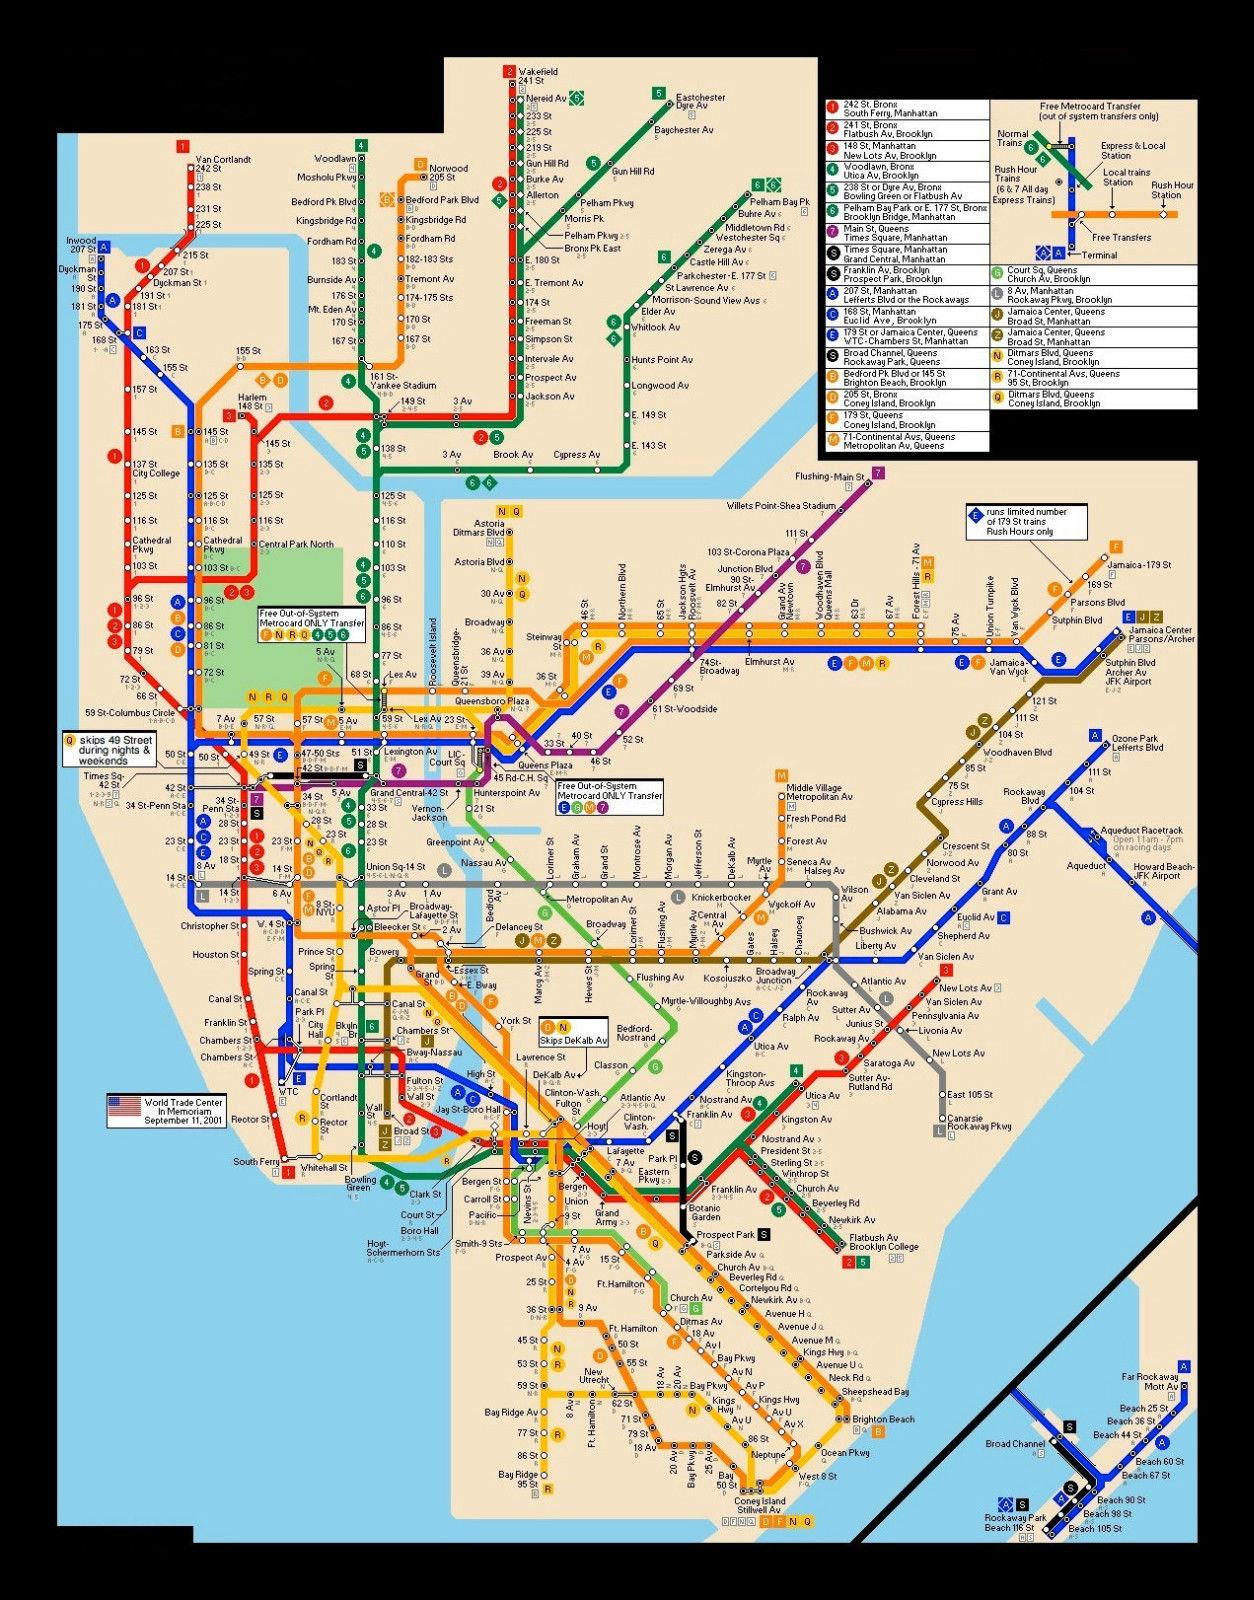 Nyc Subway Map Jpeg.New York City Subway Map Art Silk Poster 24x36inch 24x43inch 0587